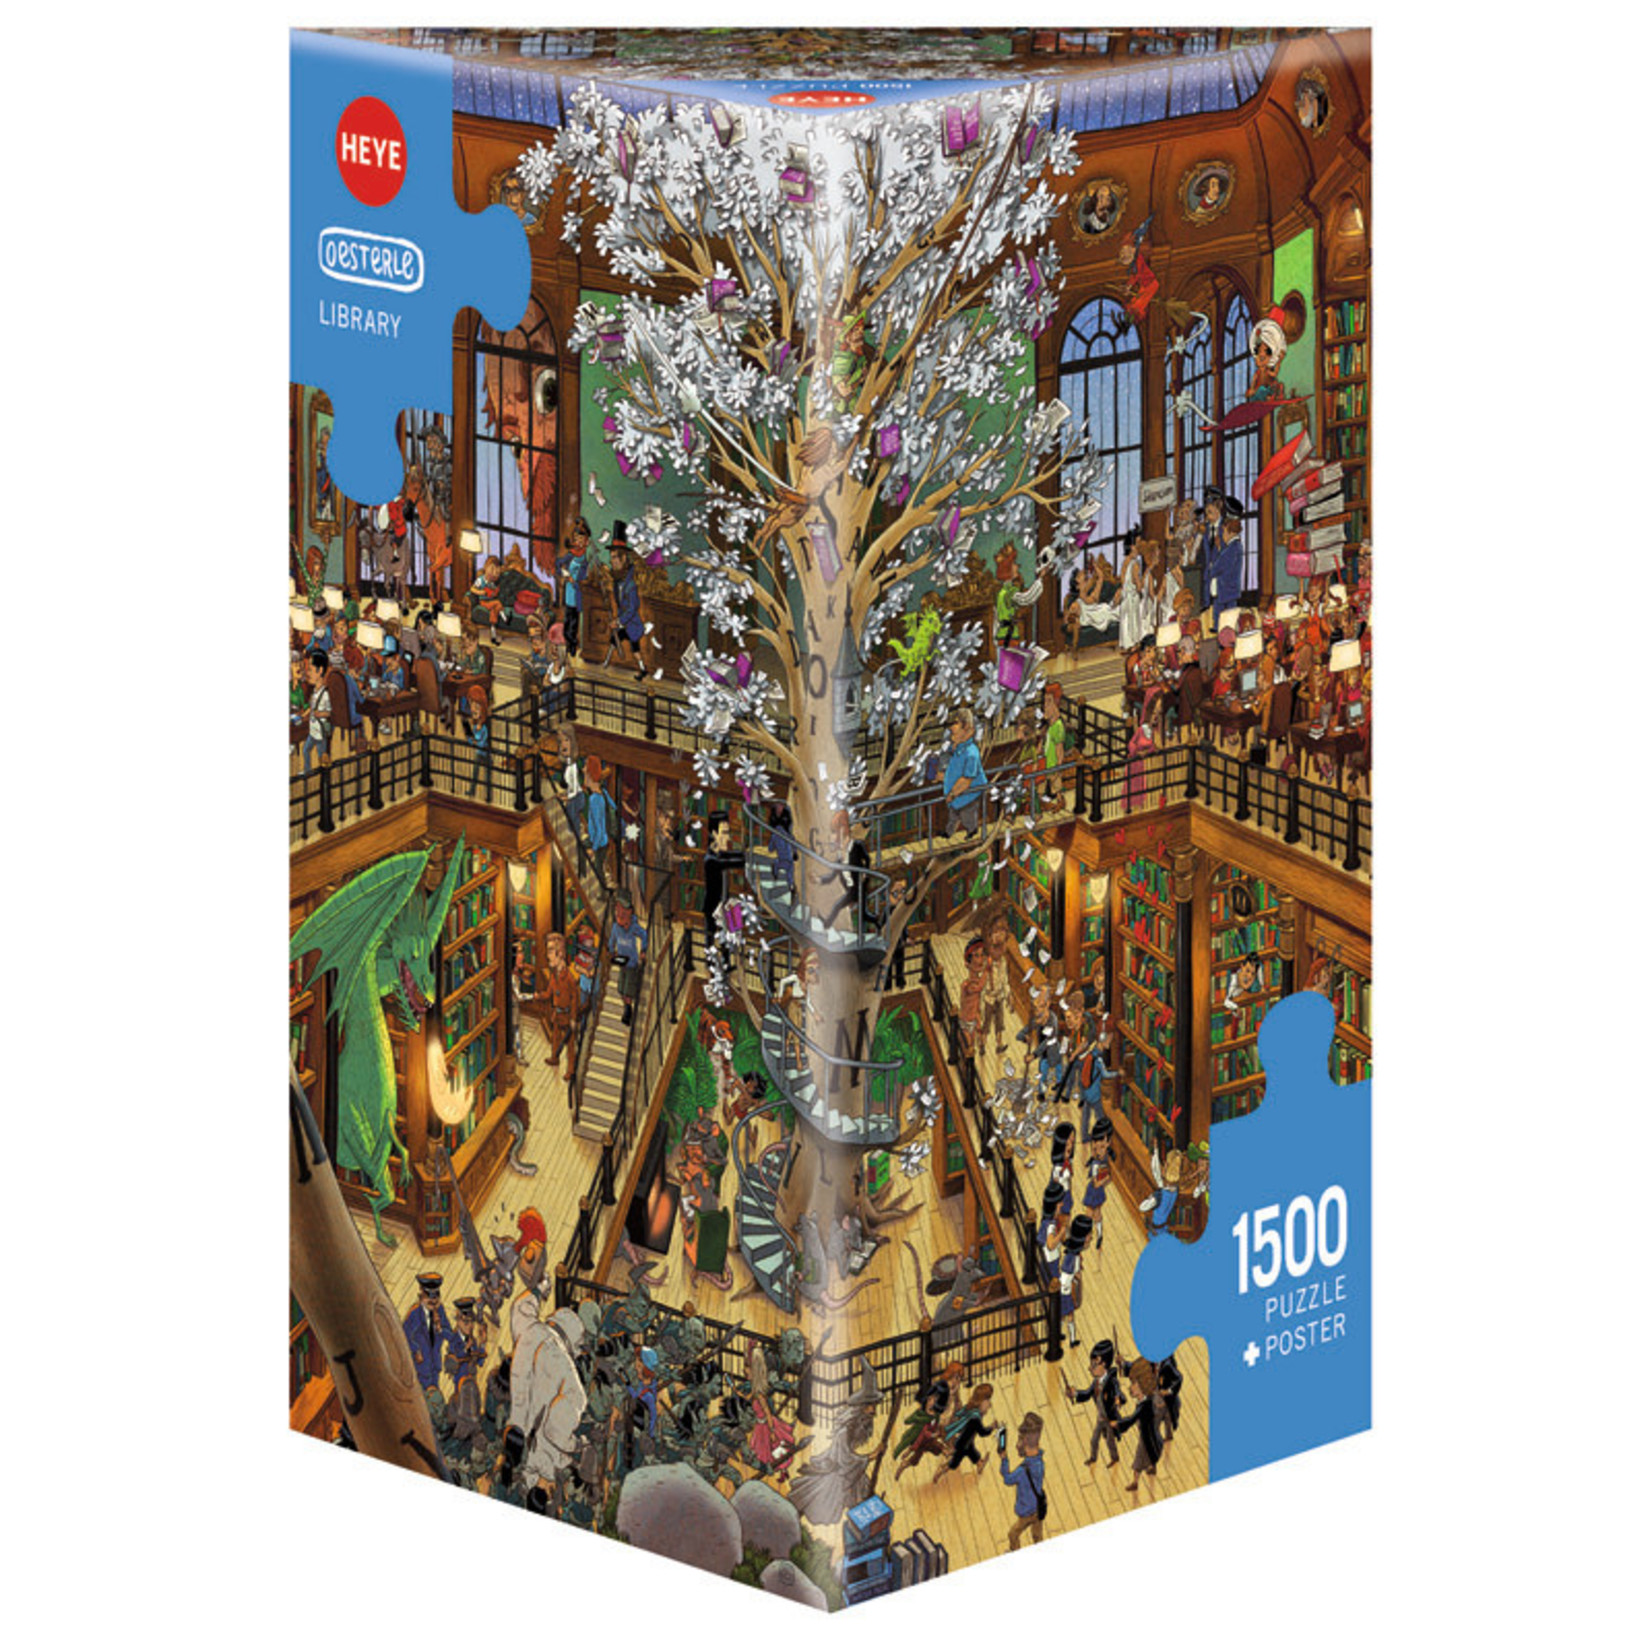 Heye Puzzles Library 1500pc